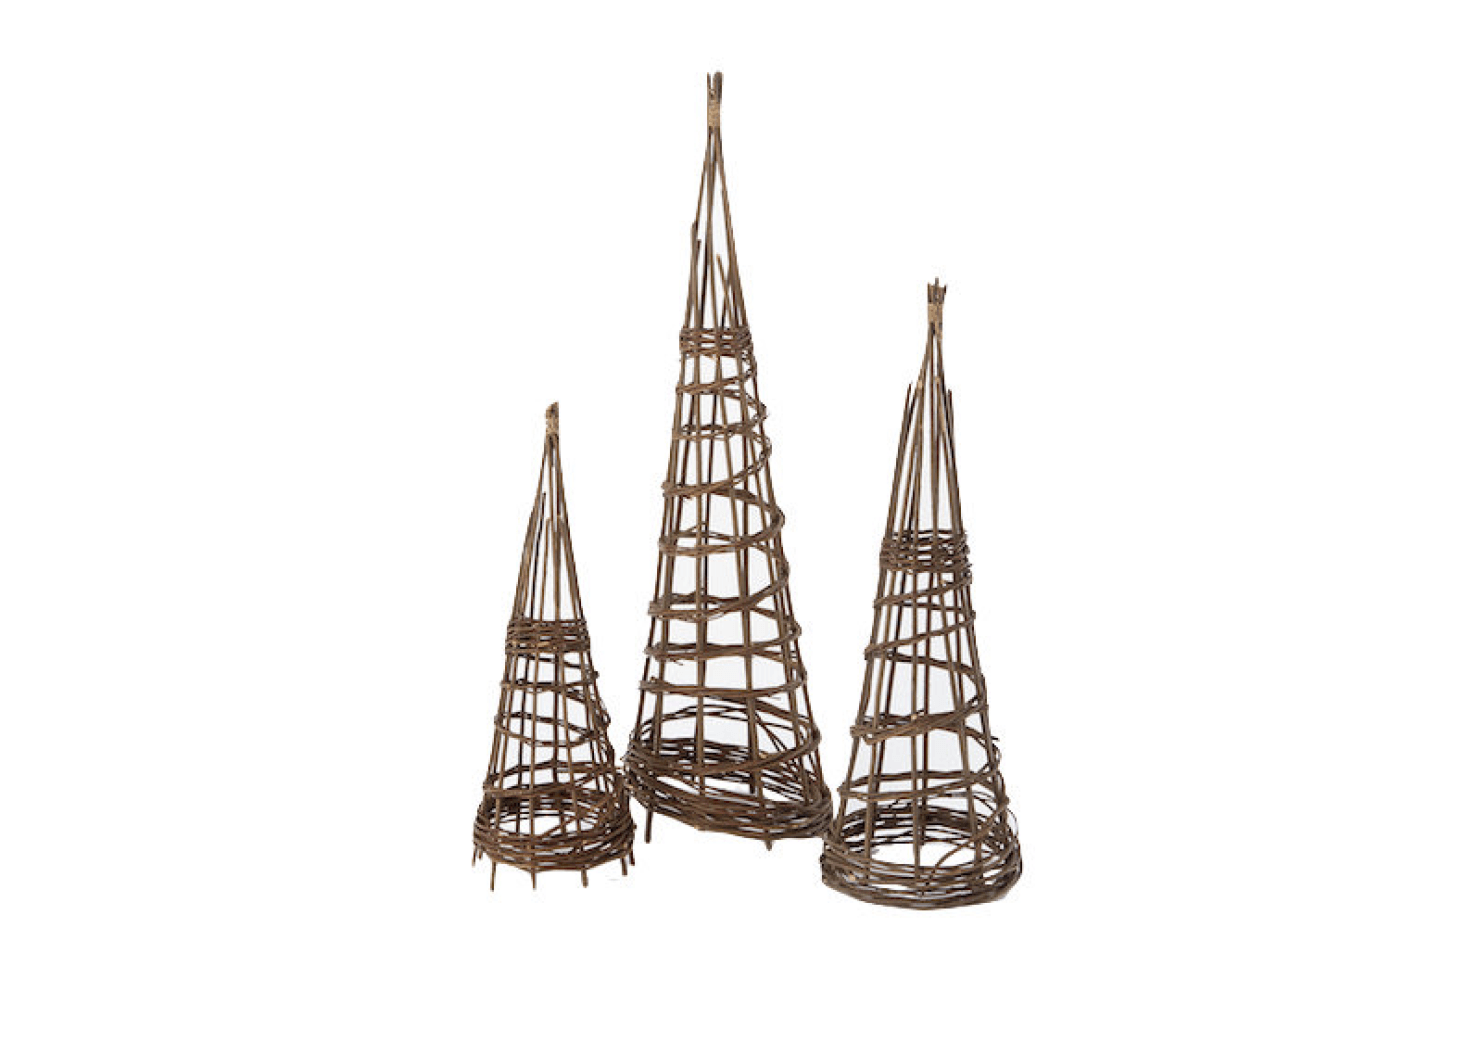 A Willow Garden Obelisk Is Available In Three Heights (from 28 To 47 Inches)